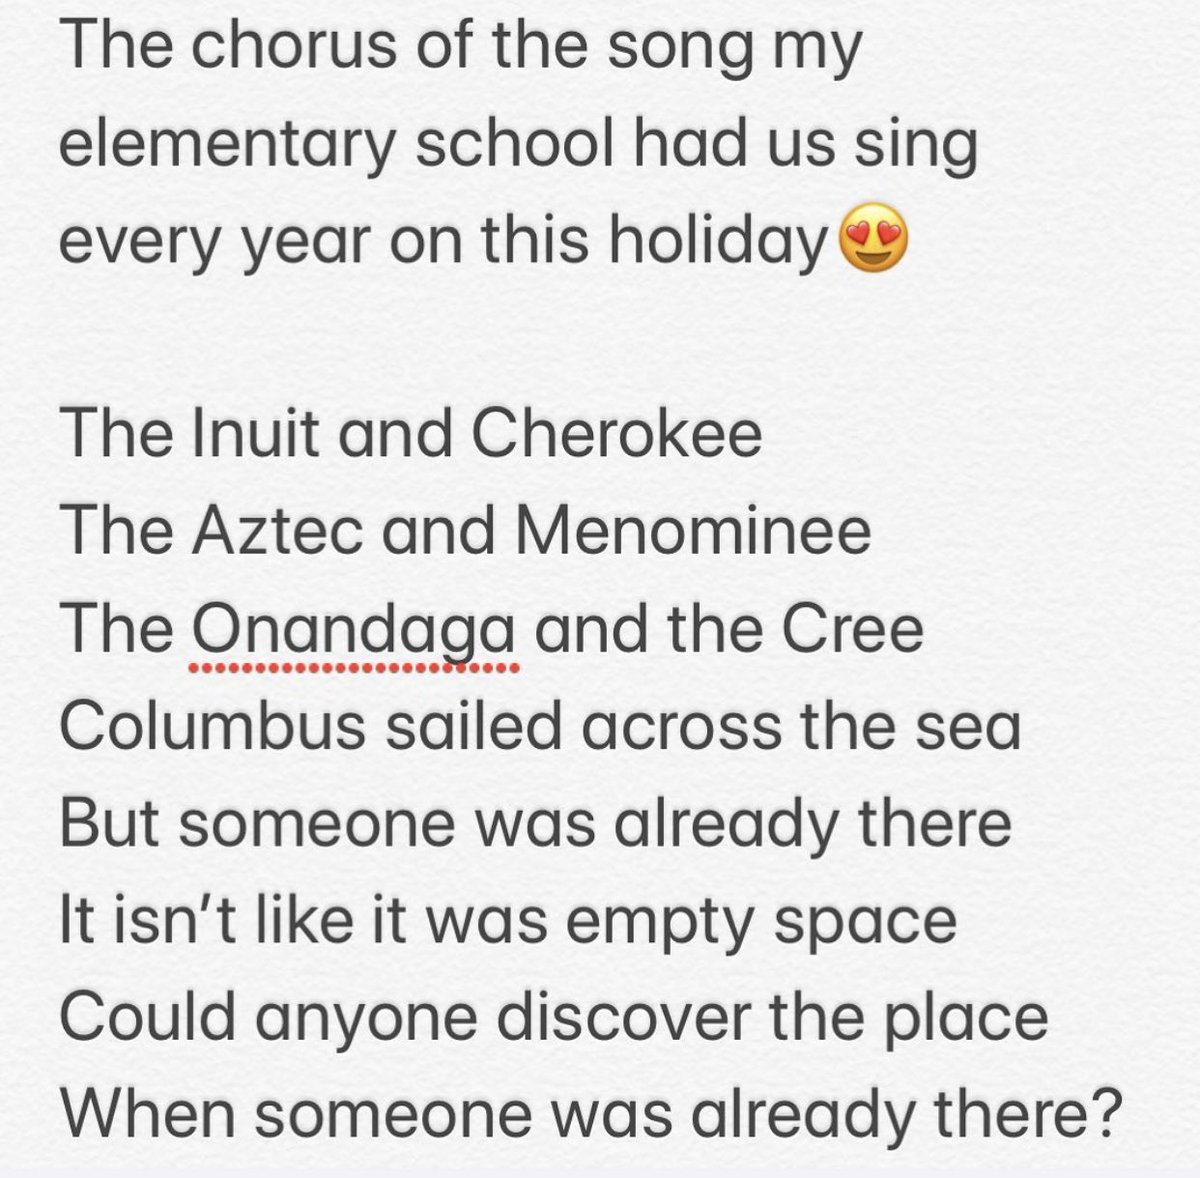 Shout out to elementary school music teachers, especially Mrs Evans who had us sing this song every Columbus Day and Thanksgiving.